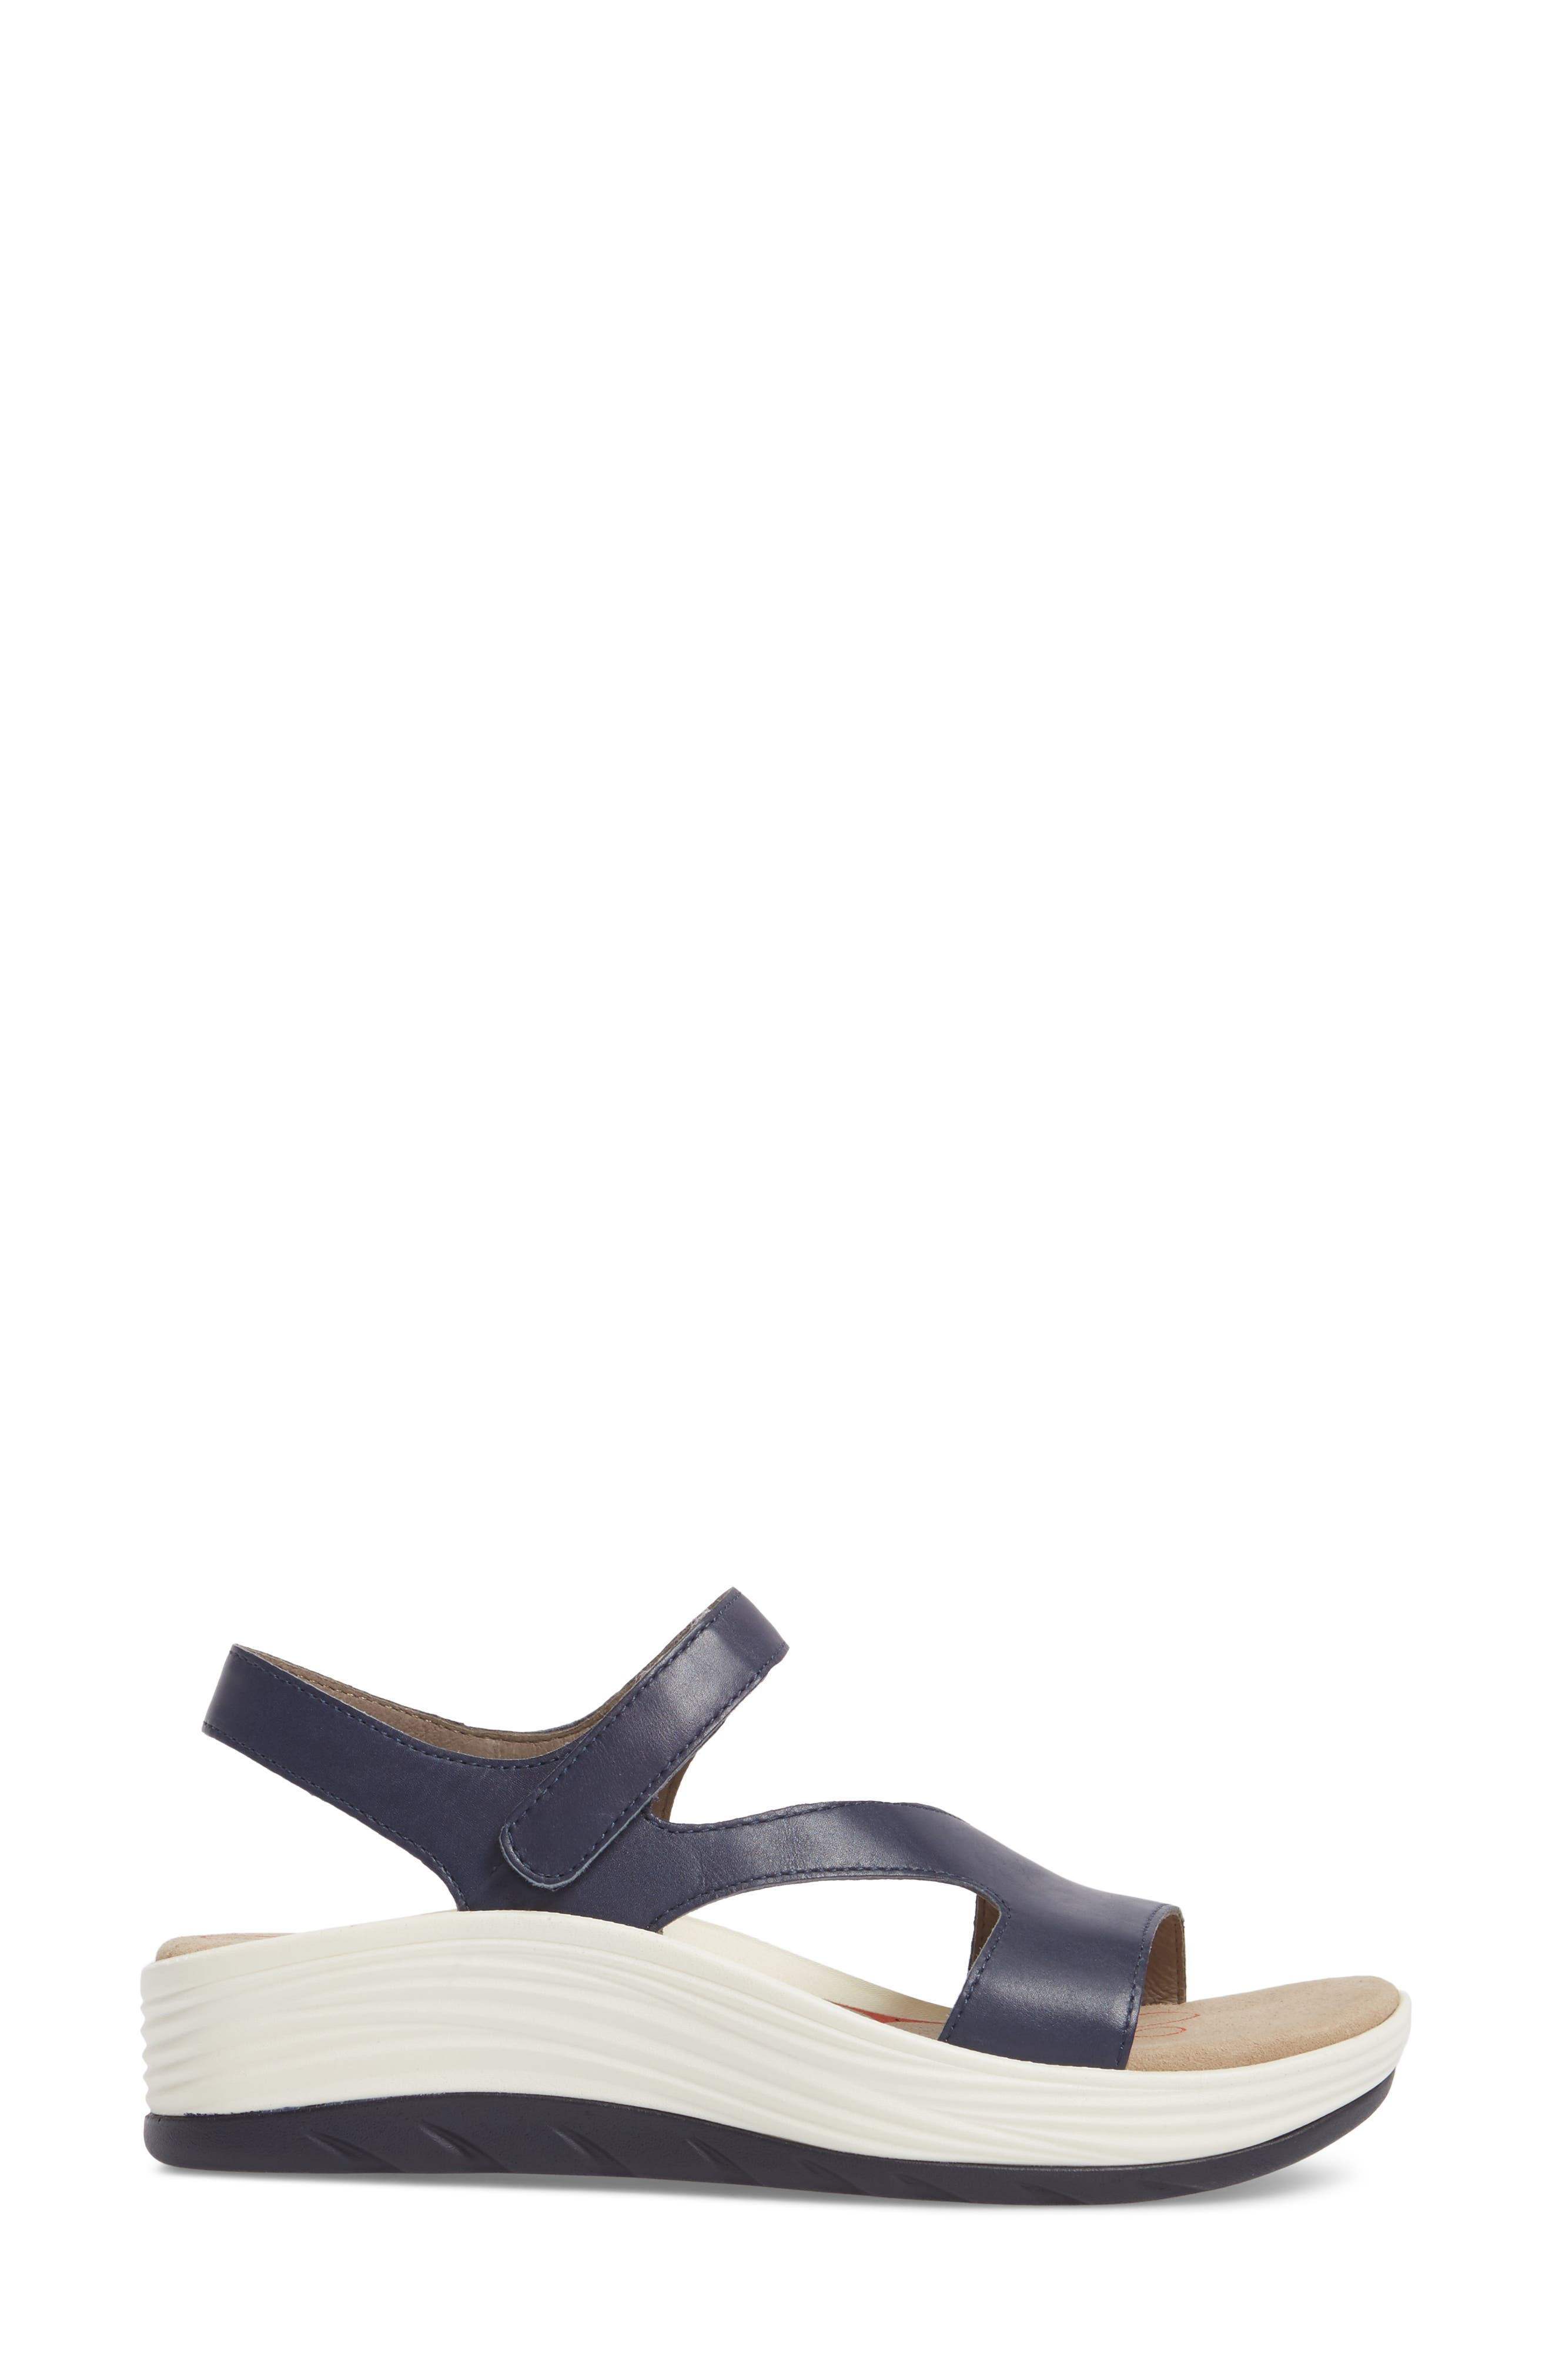 Cybele Platform Sandal,                             Alternate thumbnail 3, color,                             Peacoat Navy Leather